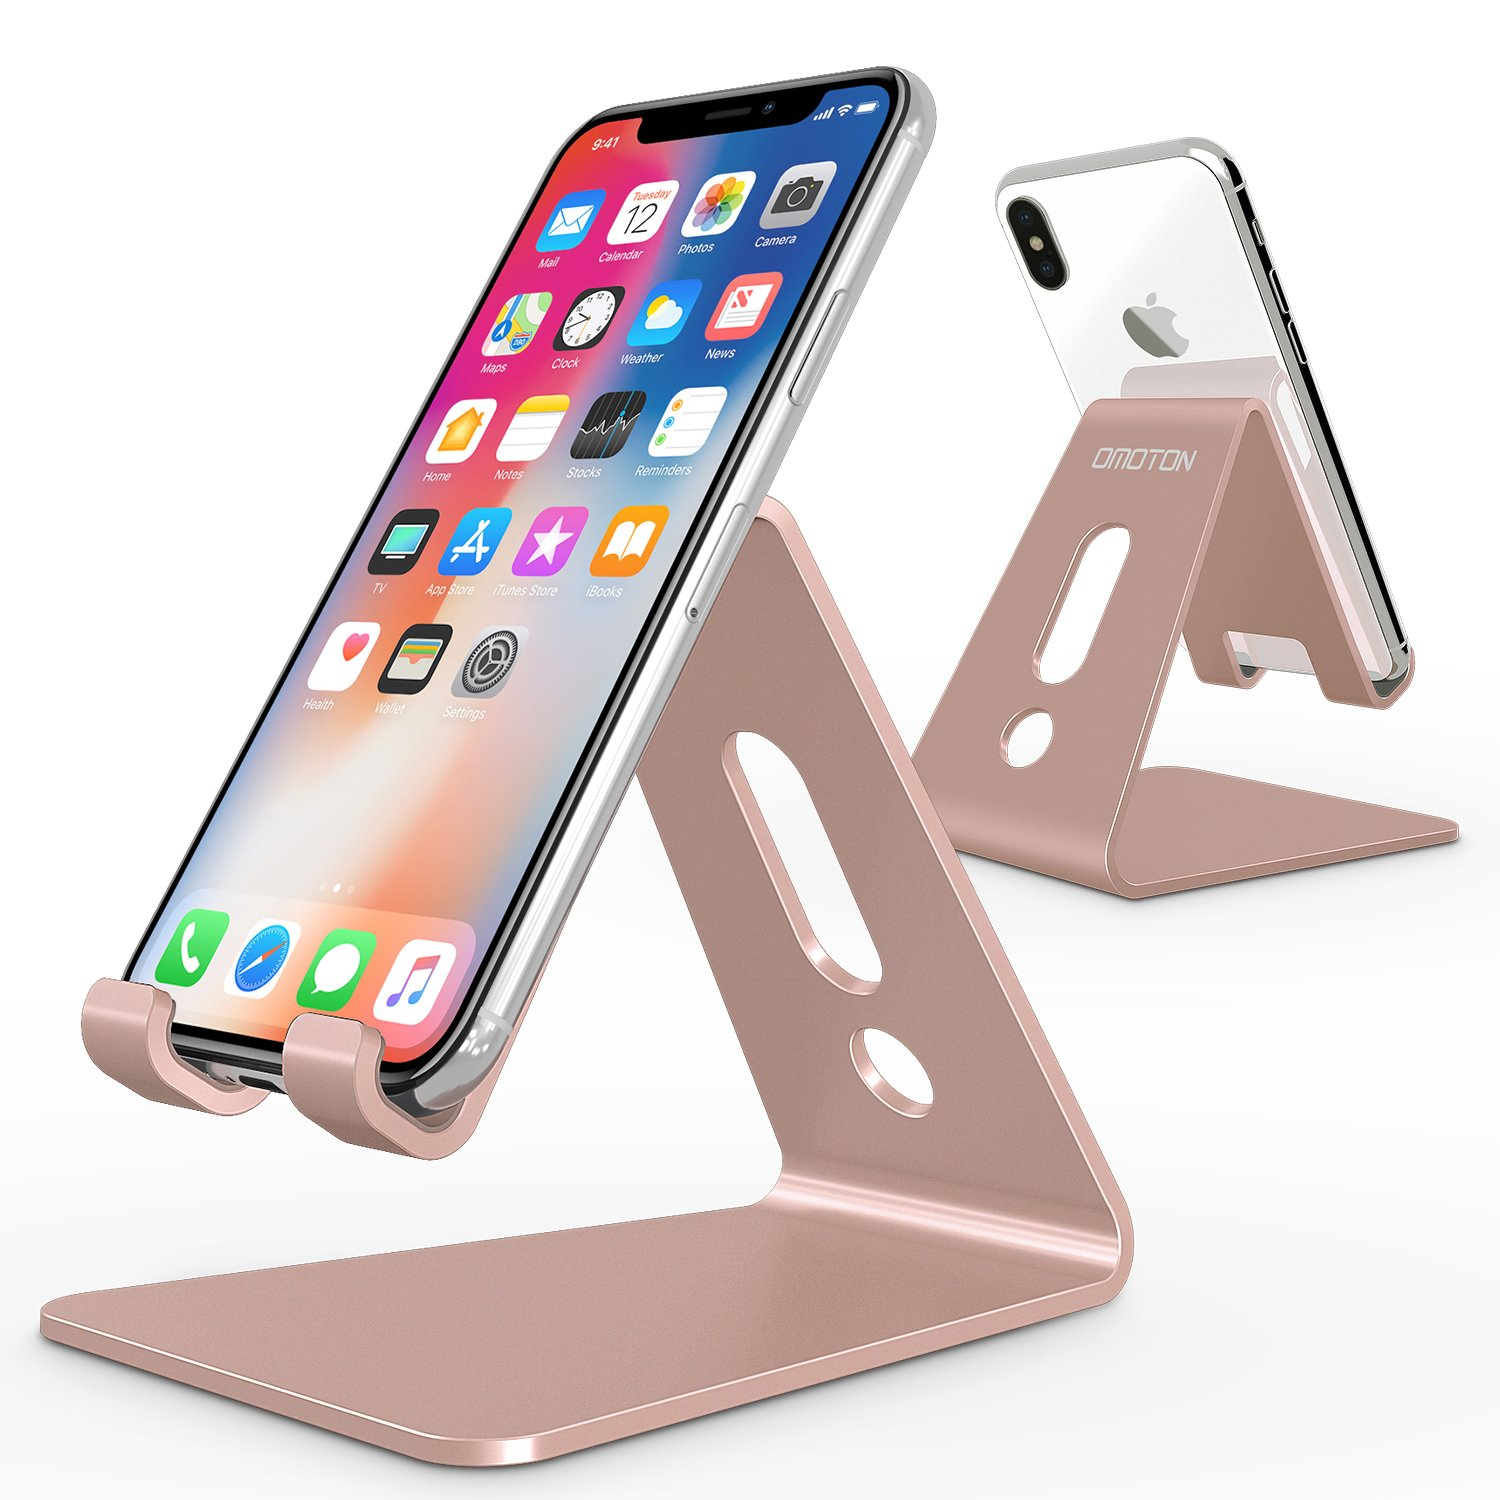 [Updated Solid Version] OMOTON Desktop Cell Phone Stand Tablet Stand, Advanced 4mm Thickness Aluminum Stand Holder for Mobile Phone and Tablet (Up to 10.1 inch), Rose Gold by OMOTON - Voucherist